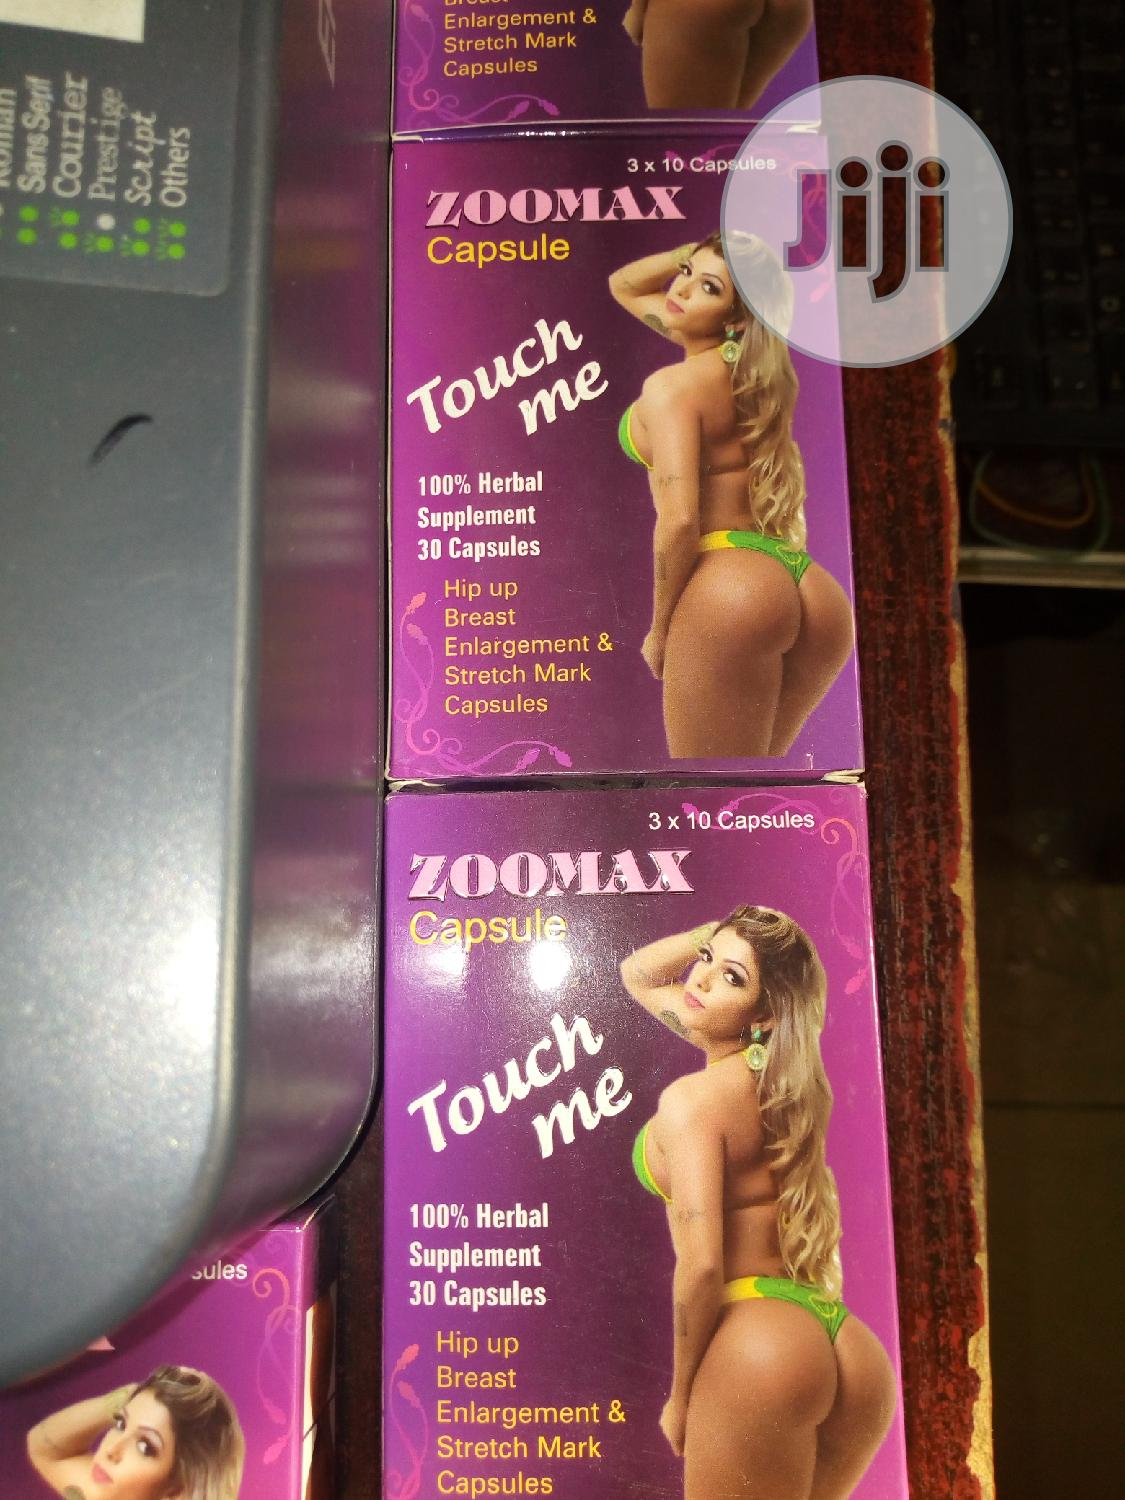 Touch Me Zoomax Capsules For Big Breasts, Hips & Buttocks Enhancement